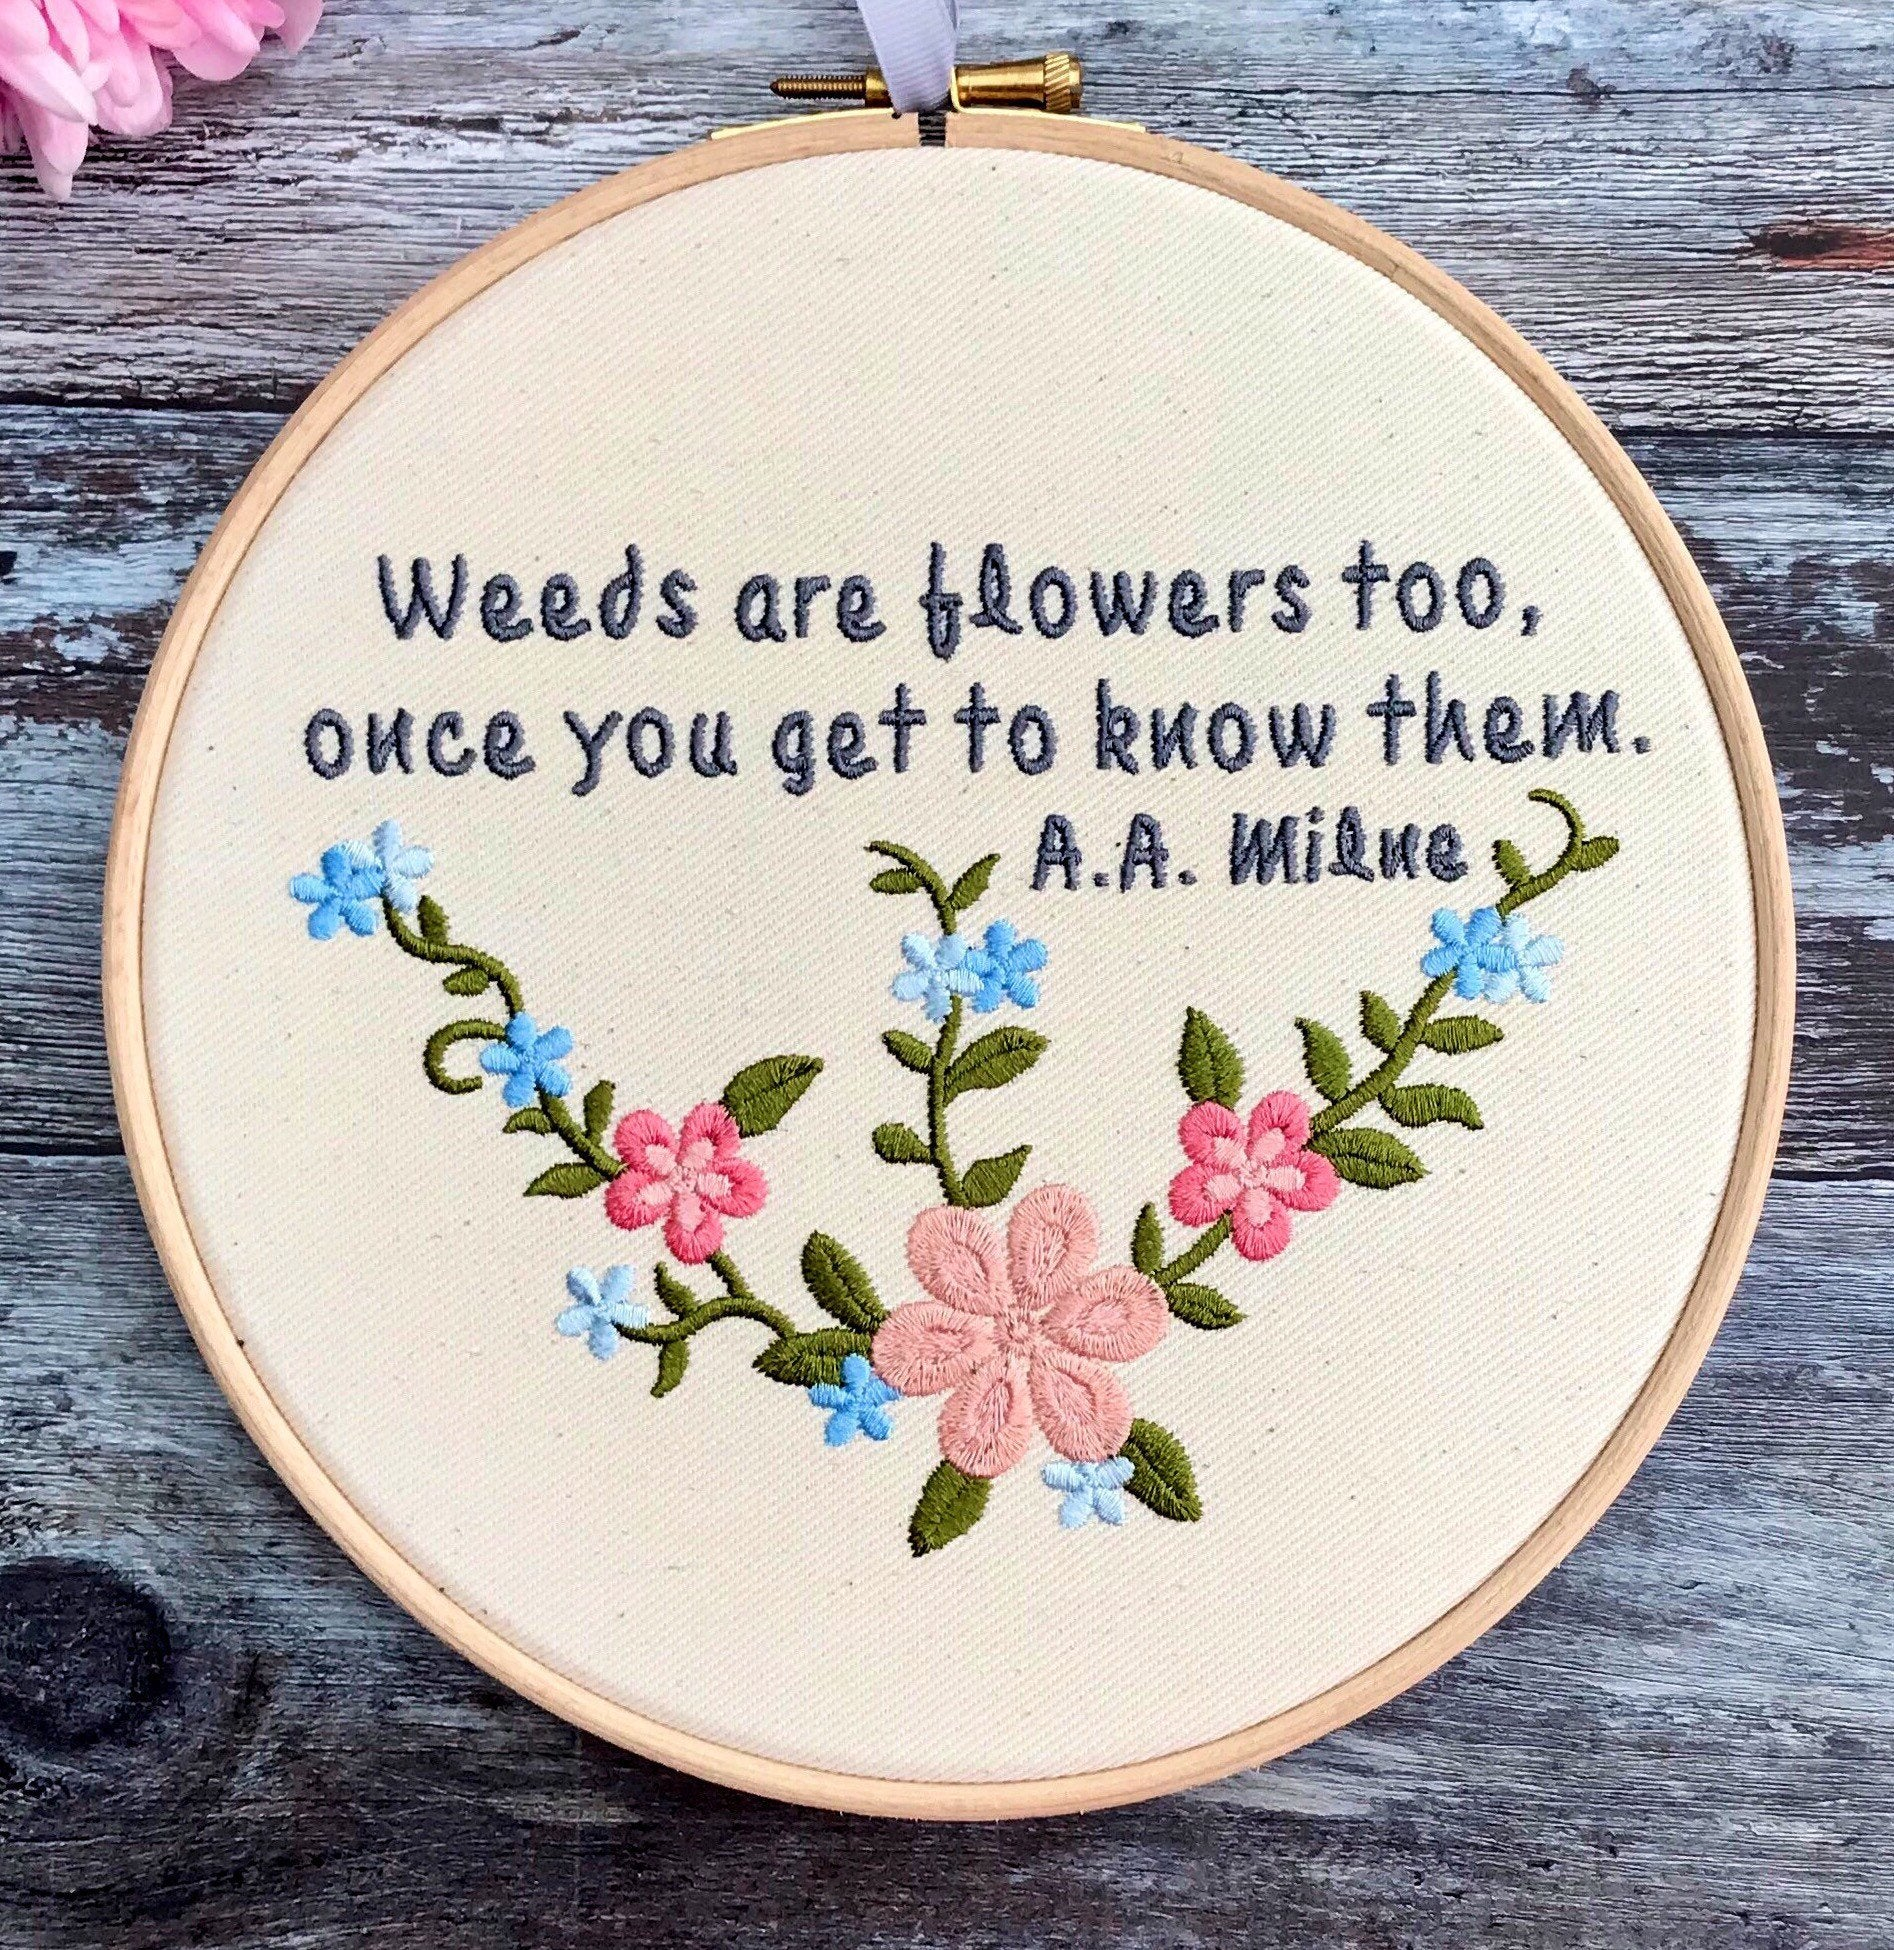 Weeds are flowers too, A.A. Milne quote, Embroidery hoop art